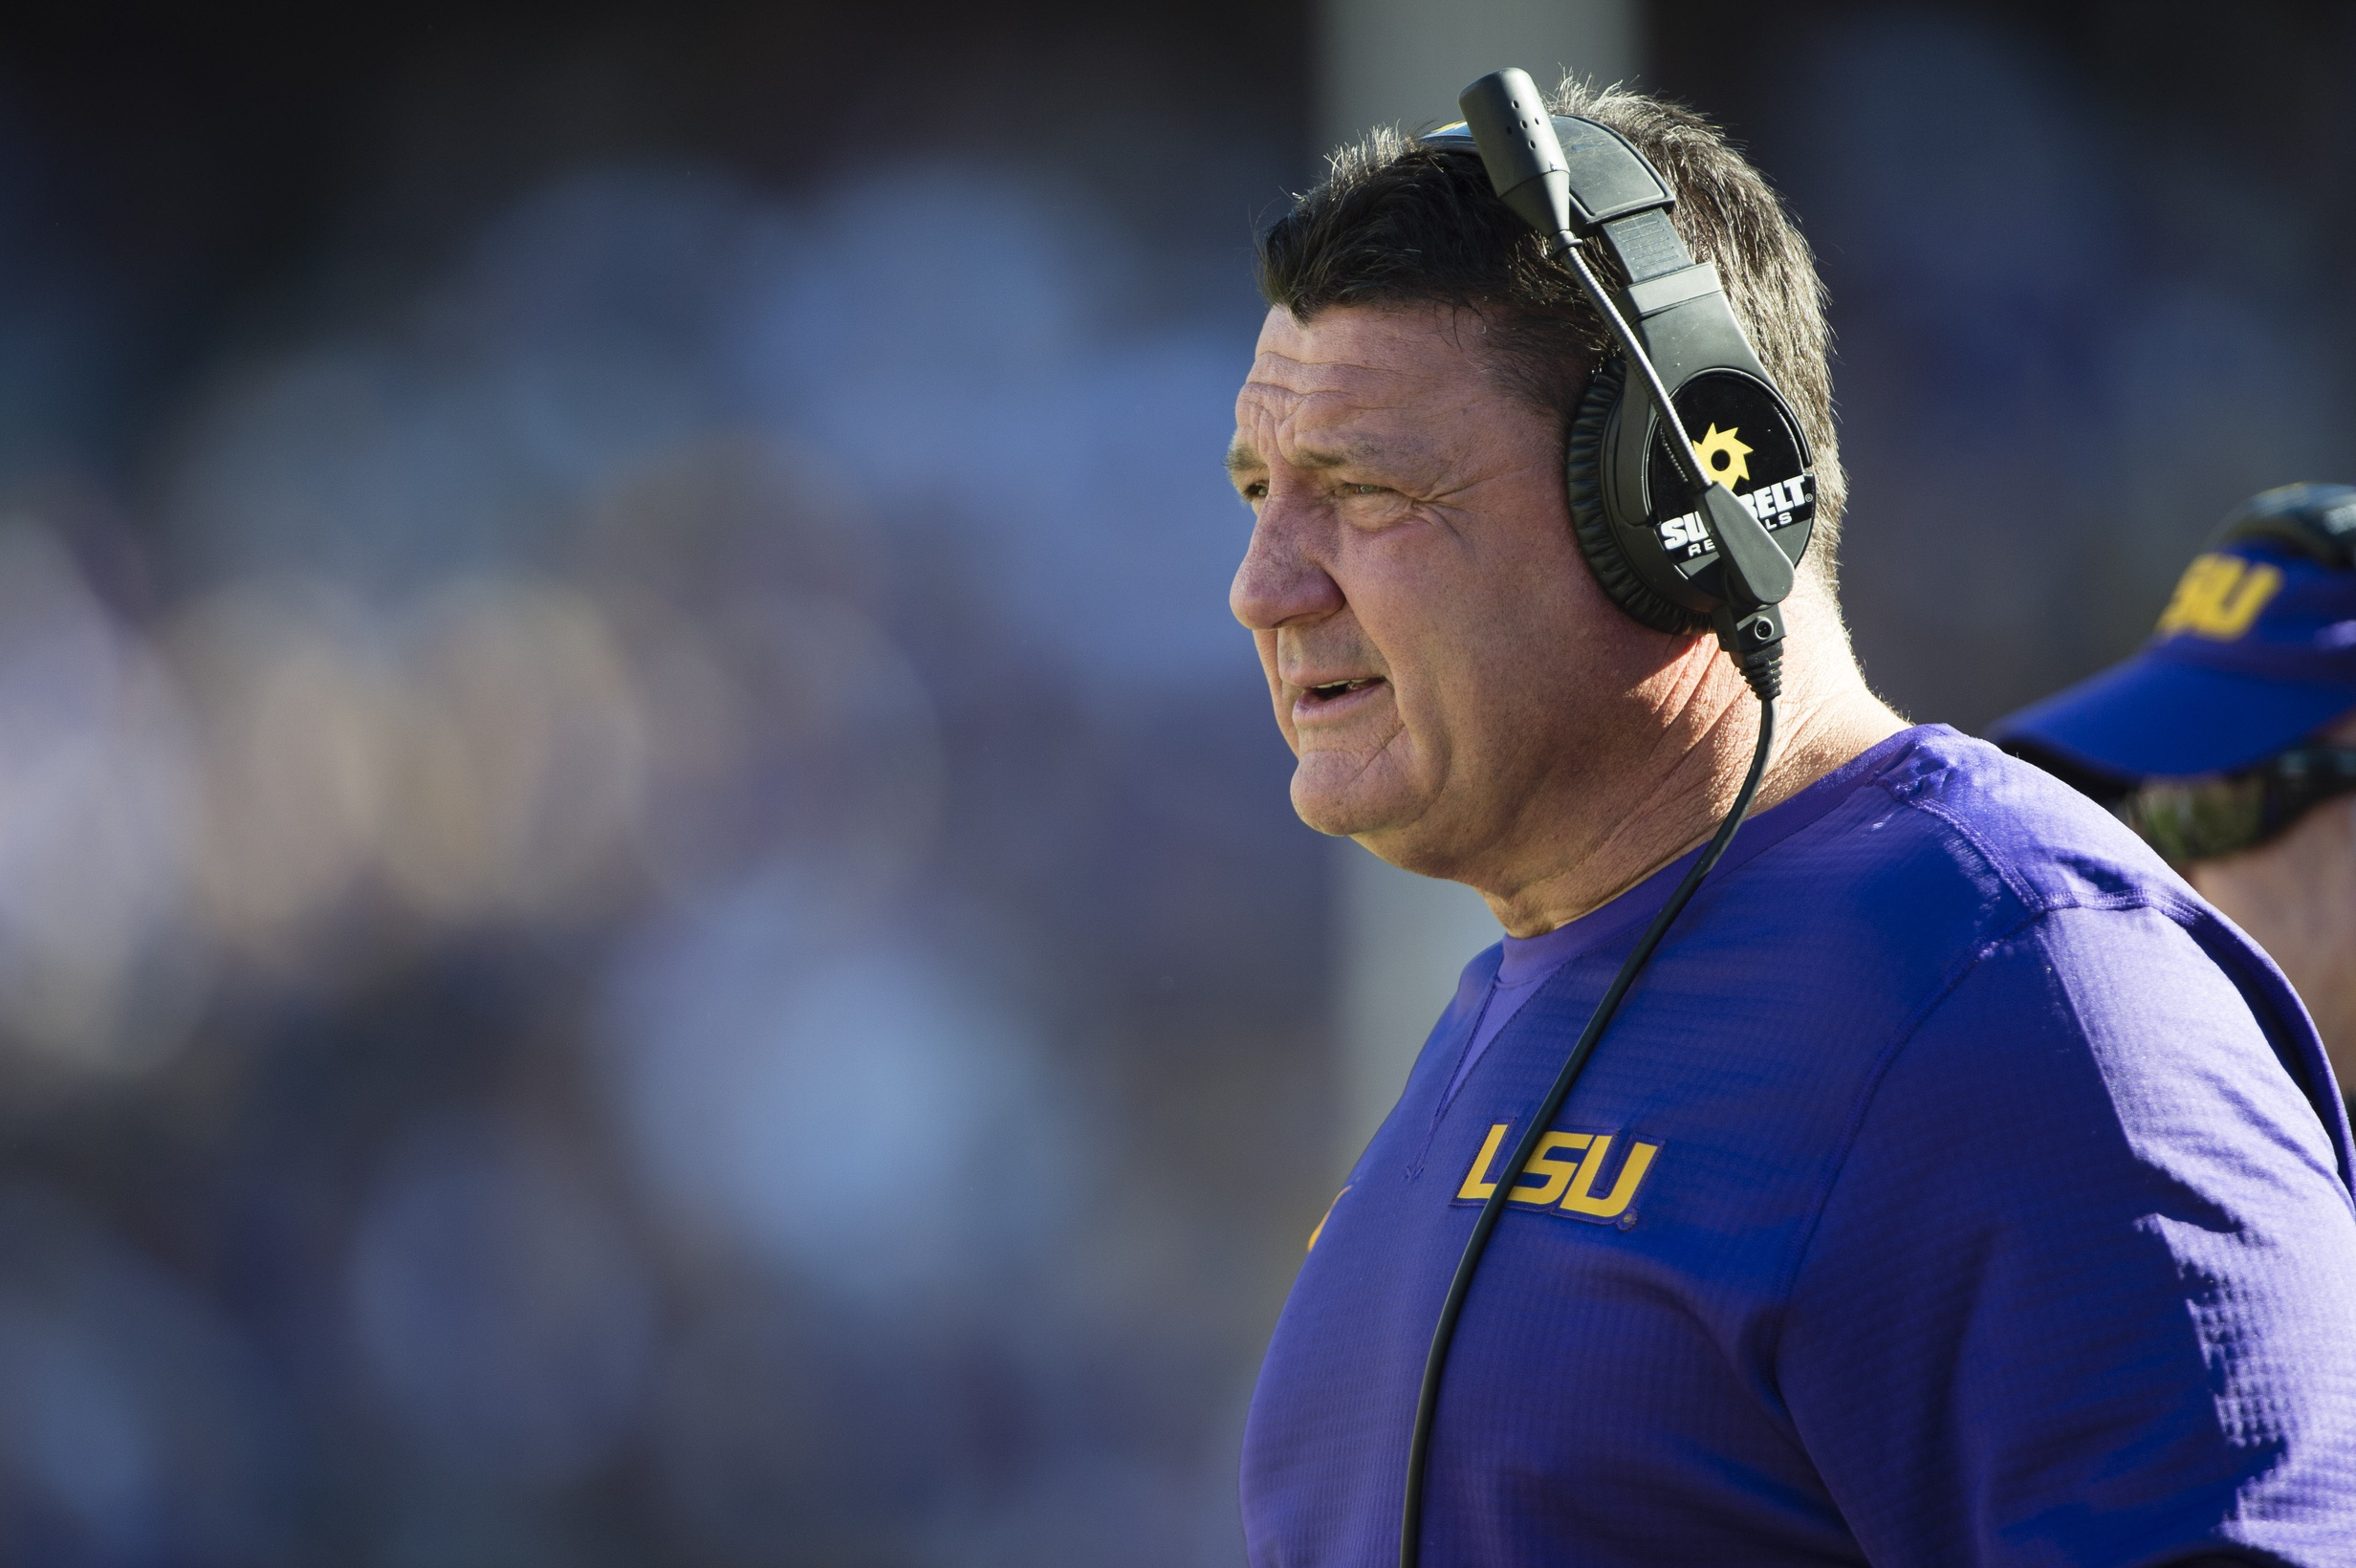 Nov 19, 2016; Baton Rouge, LA, USA; LSU Tigers interim head coach Ed Orgeron watches his team take on the Florida Gators during the second half at Tiger Stadium. The Gators defeat the Tigers 16-10. Mandatory Credit: Jerome Miron-USA TODAY Sports